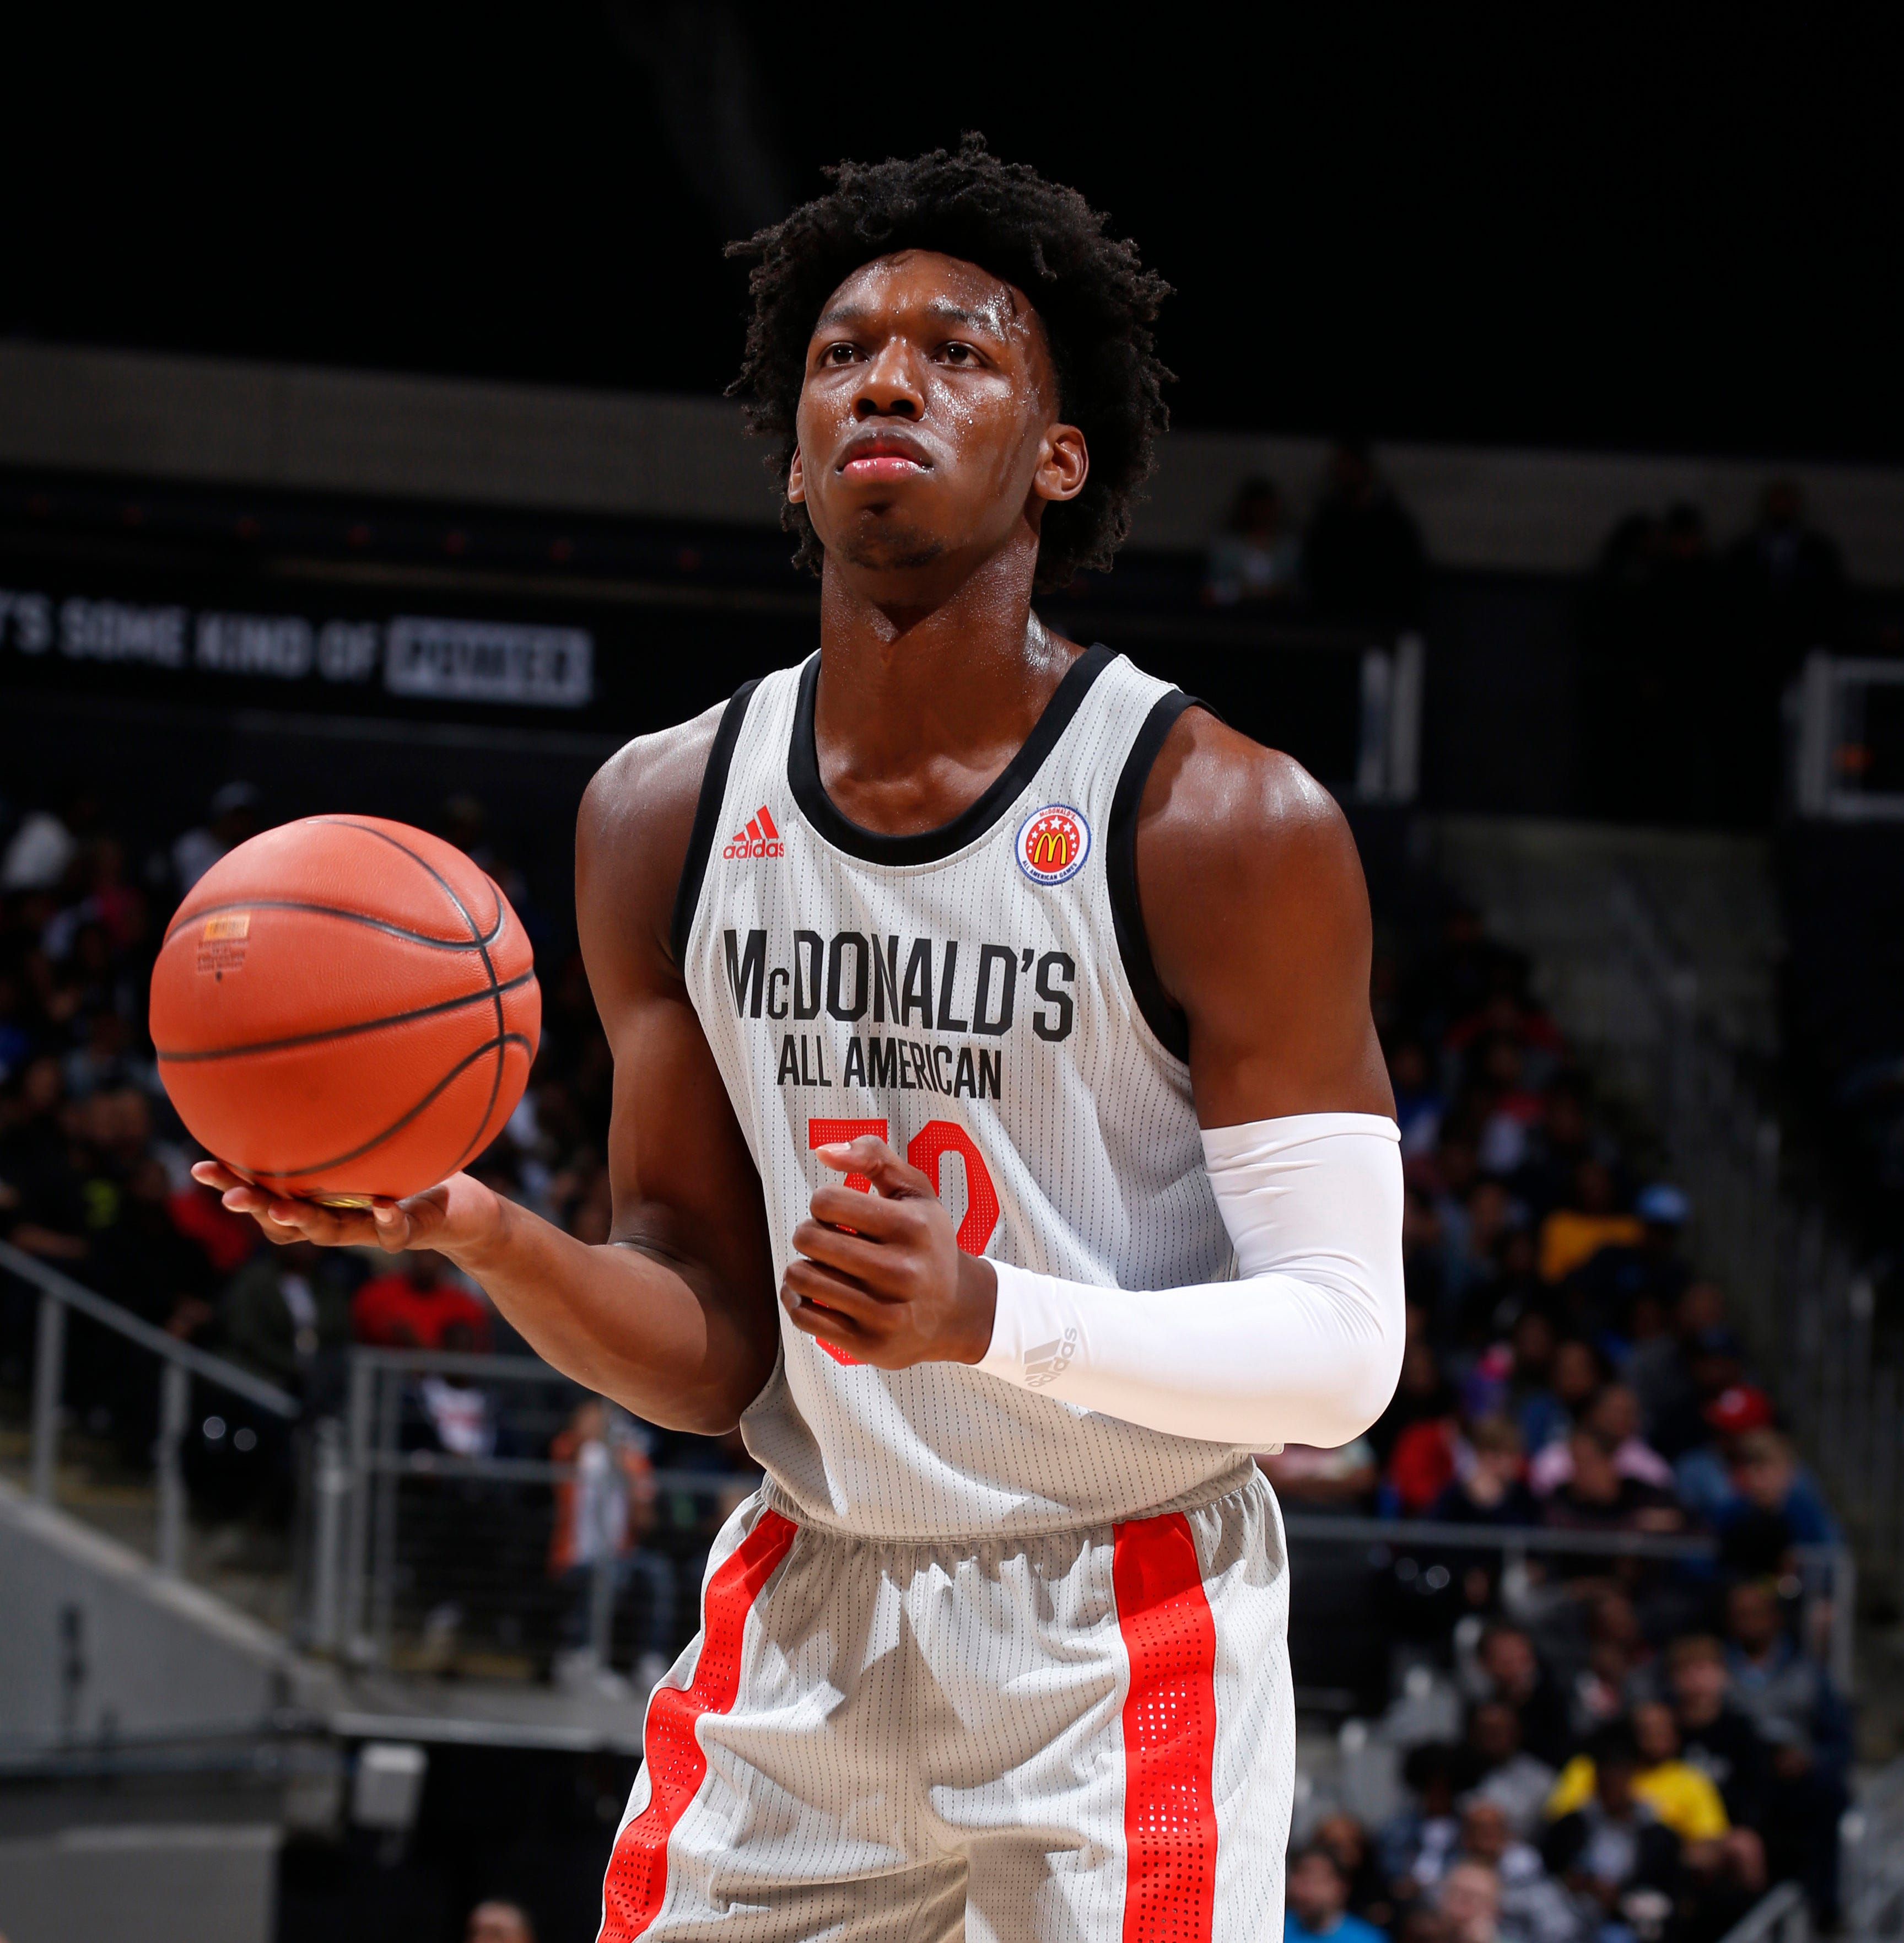 James Wiseman, Cole Anthony named Co-MVPs of Jordan Brand Classic